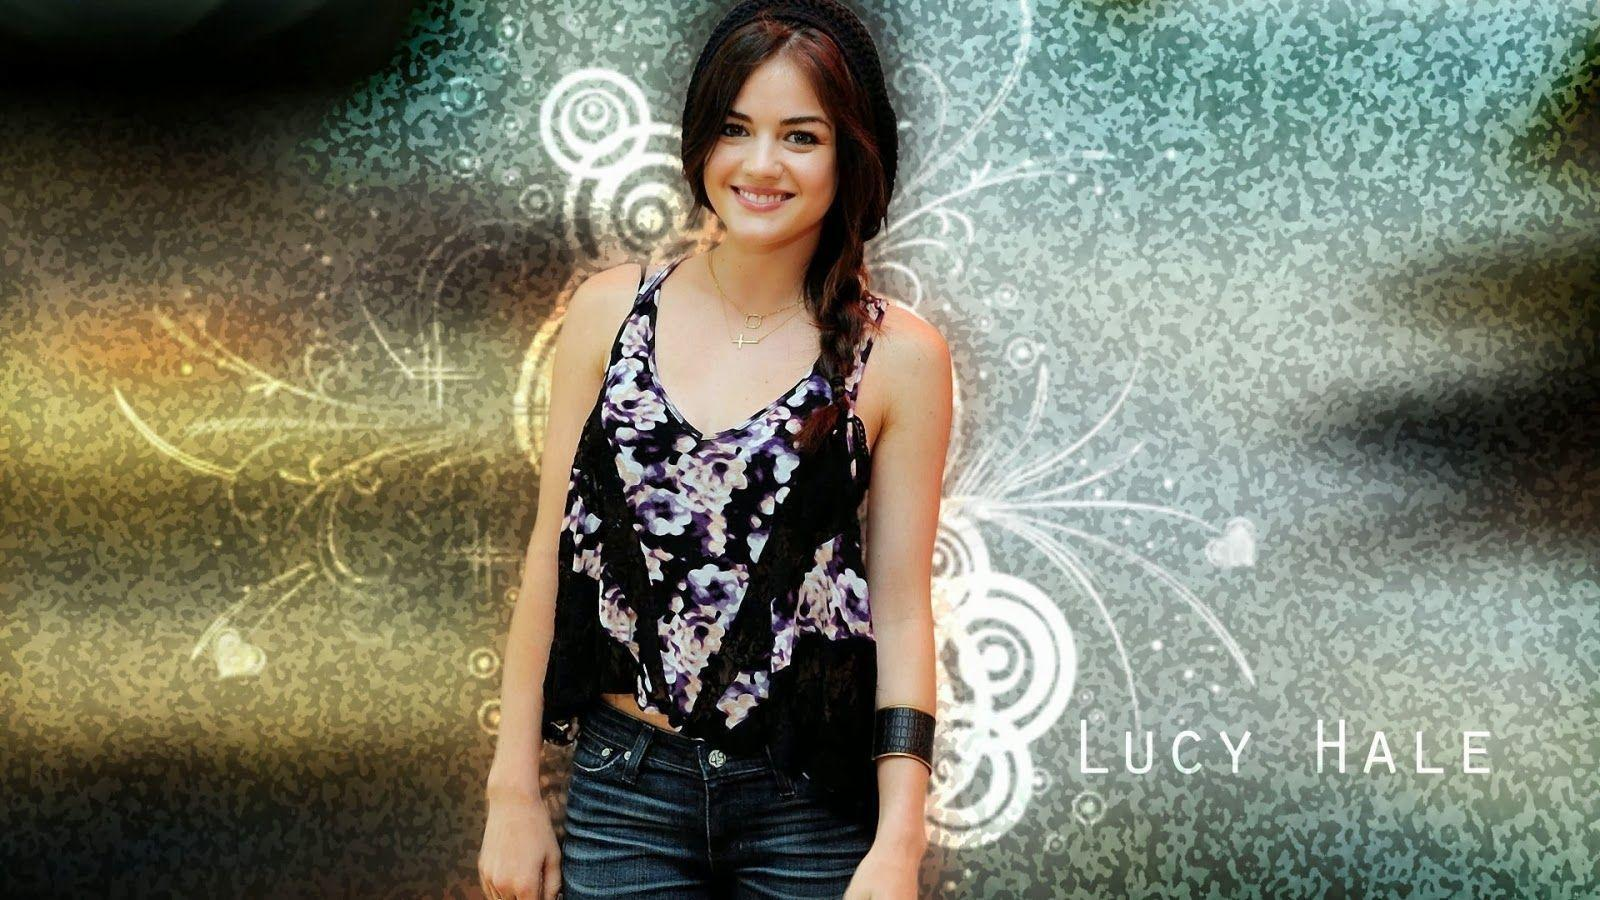 Hollywood Actress Lucy Hale Wallpaper And News - Everything 4u